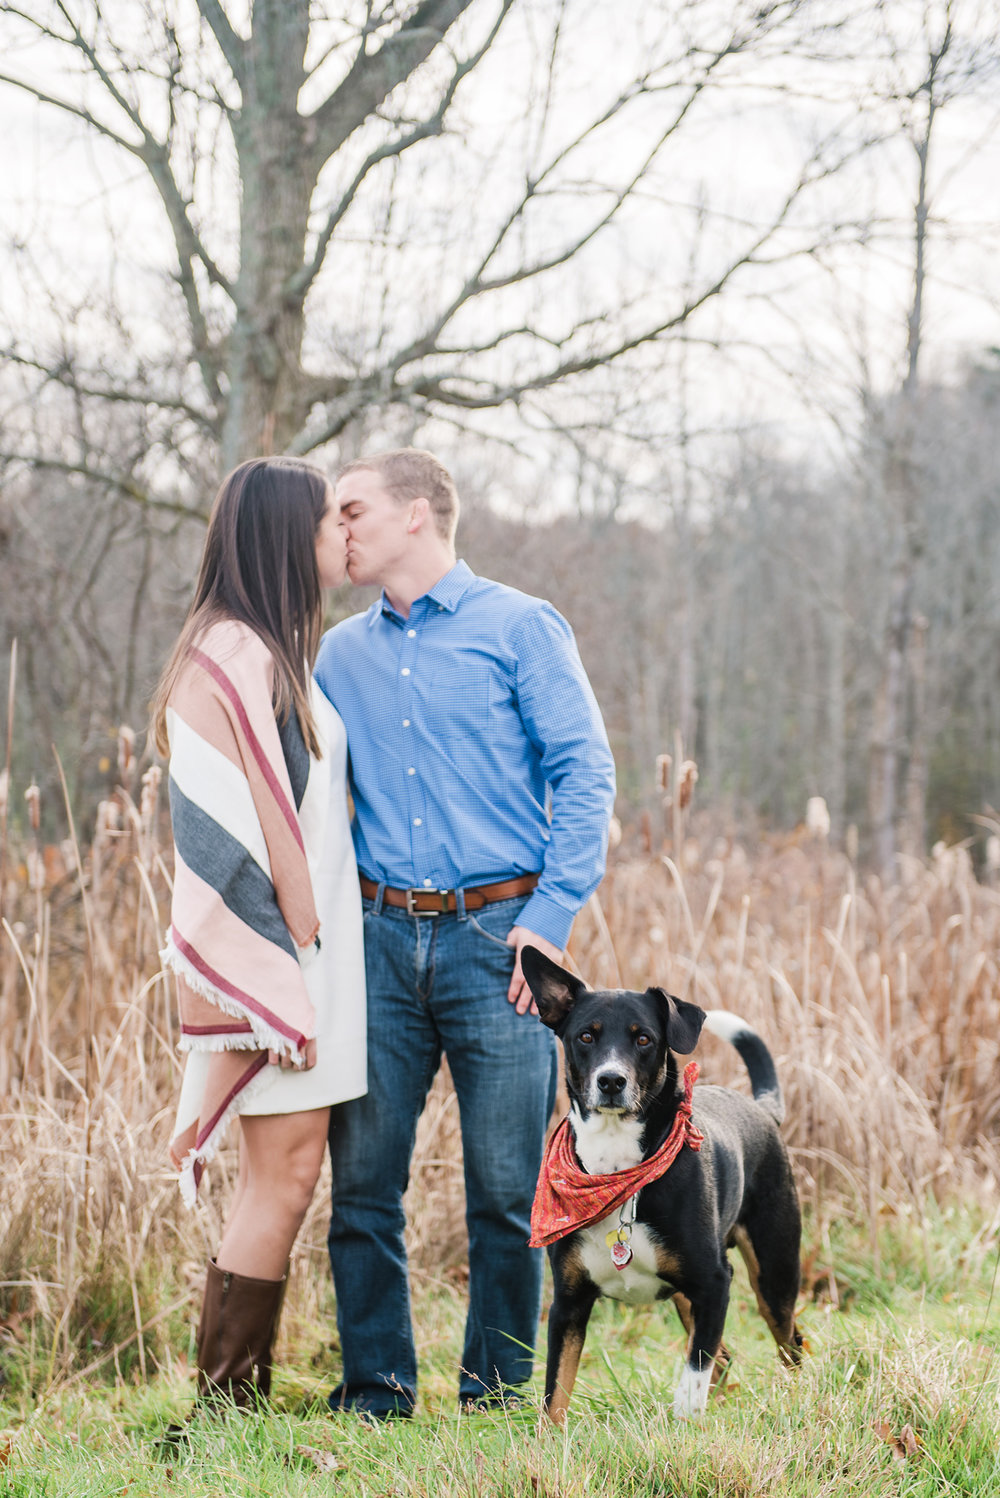 Mendon_Ponds_Park_Rochester_Engagement_Session_JILL_STUDIO_Rochester_NY_Photographer_DSC_0207.jpg